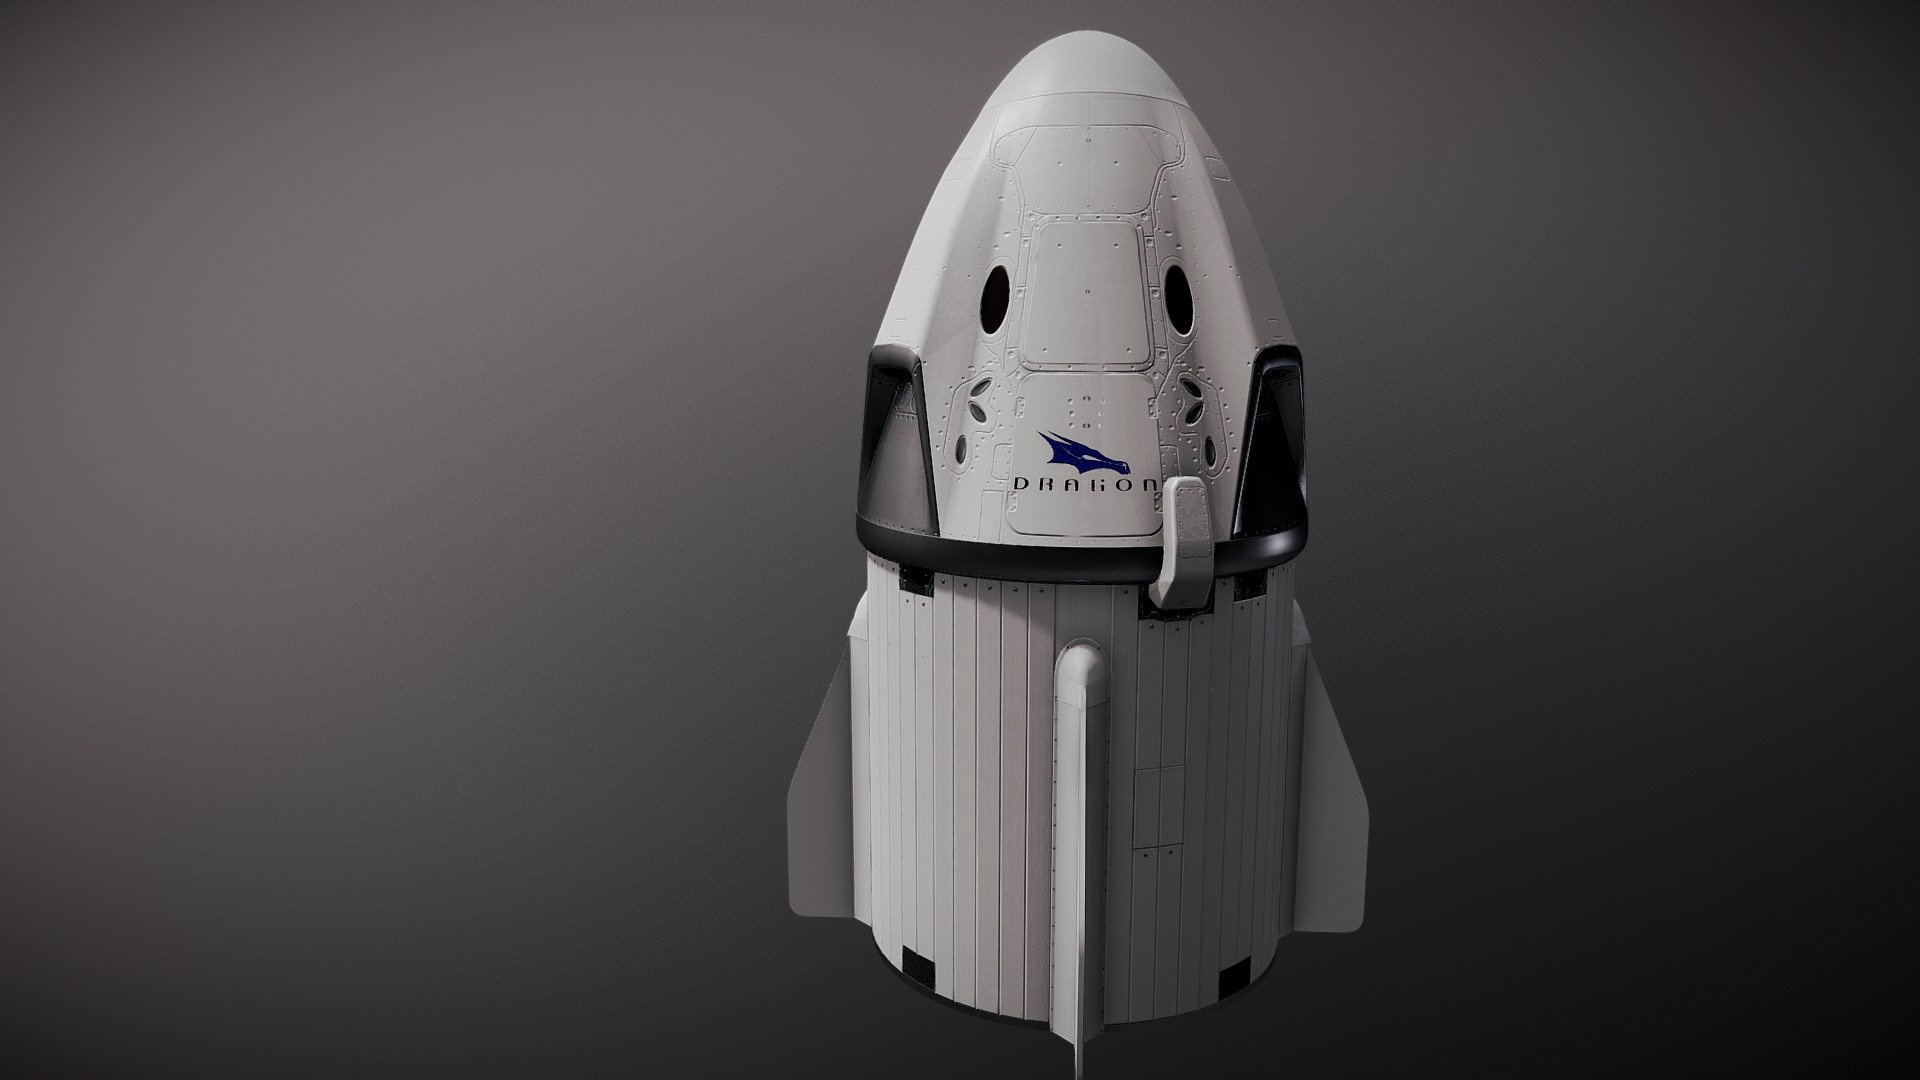 Military Vehicles For Sale >> SpaceX Crew Dragon - 3D model by hiyougami (@hiyougami) [b4189c6] - Sketchfab